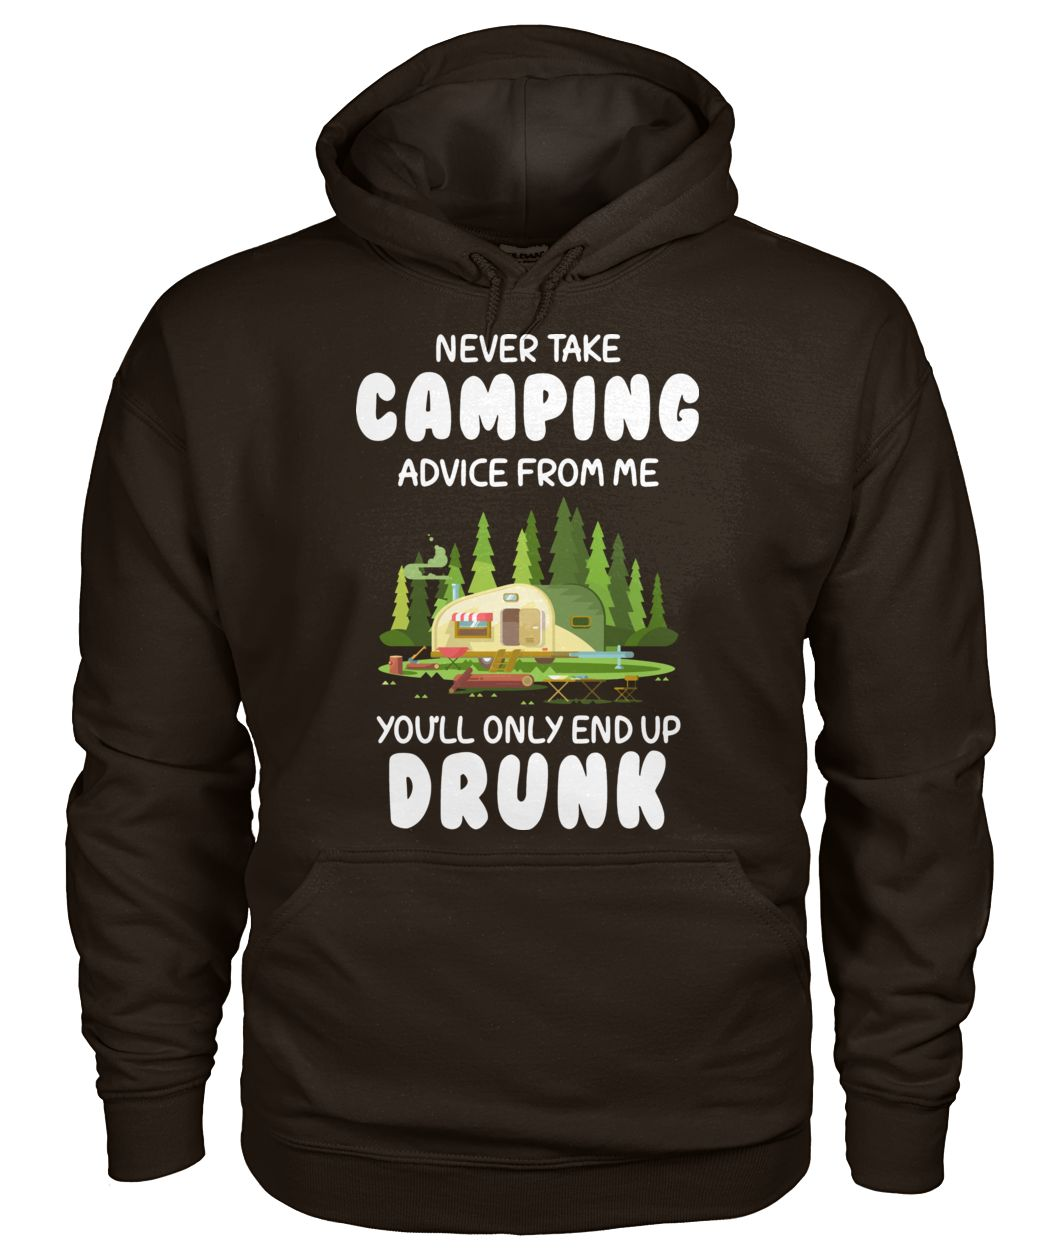 Never take camping advice from me you'll only end up drunk gildan hoodie